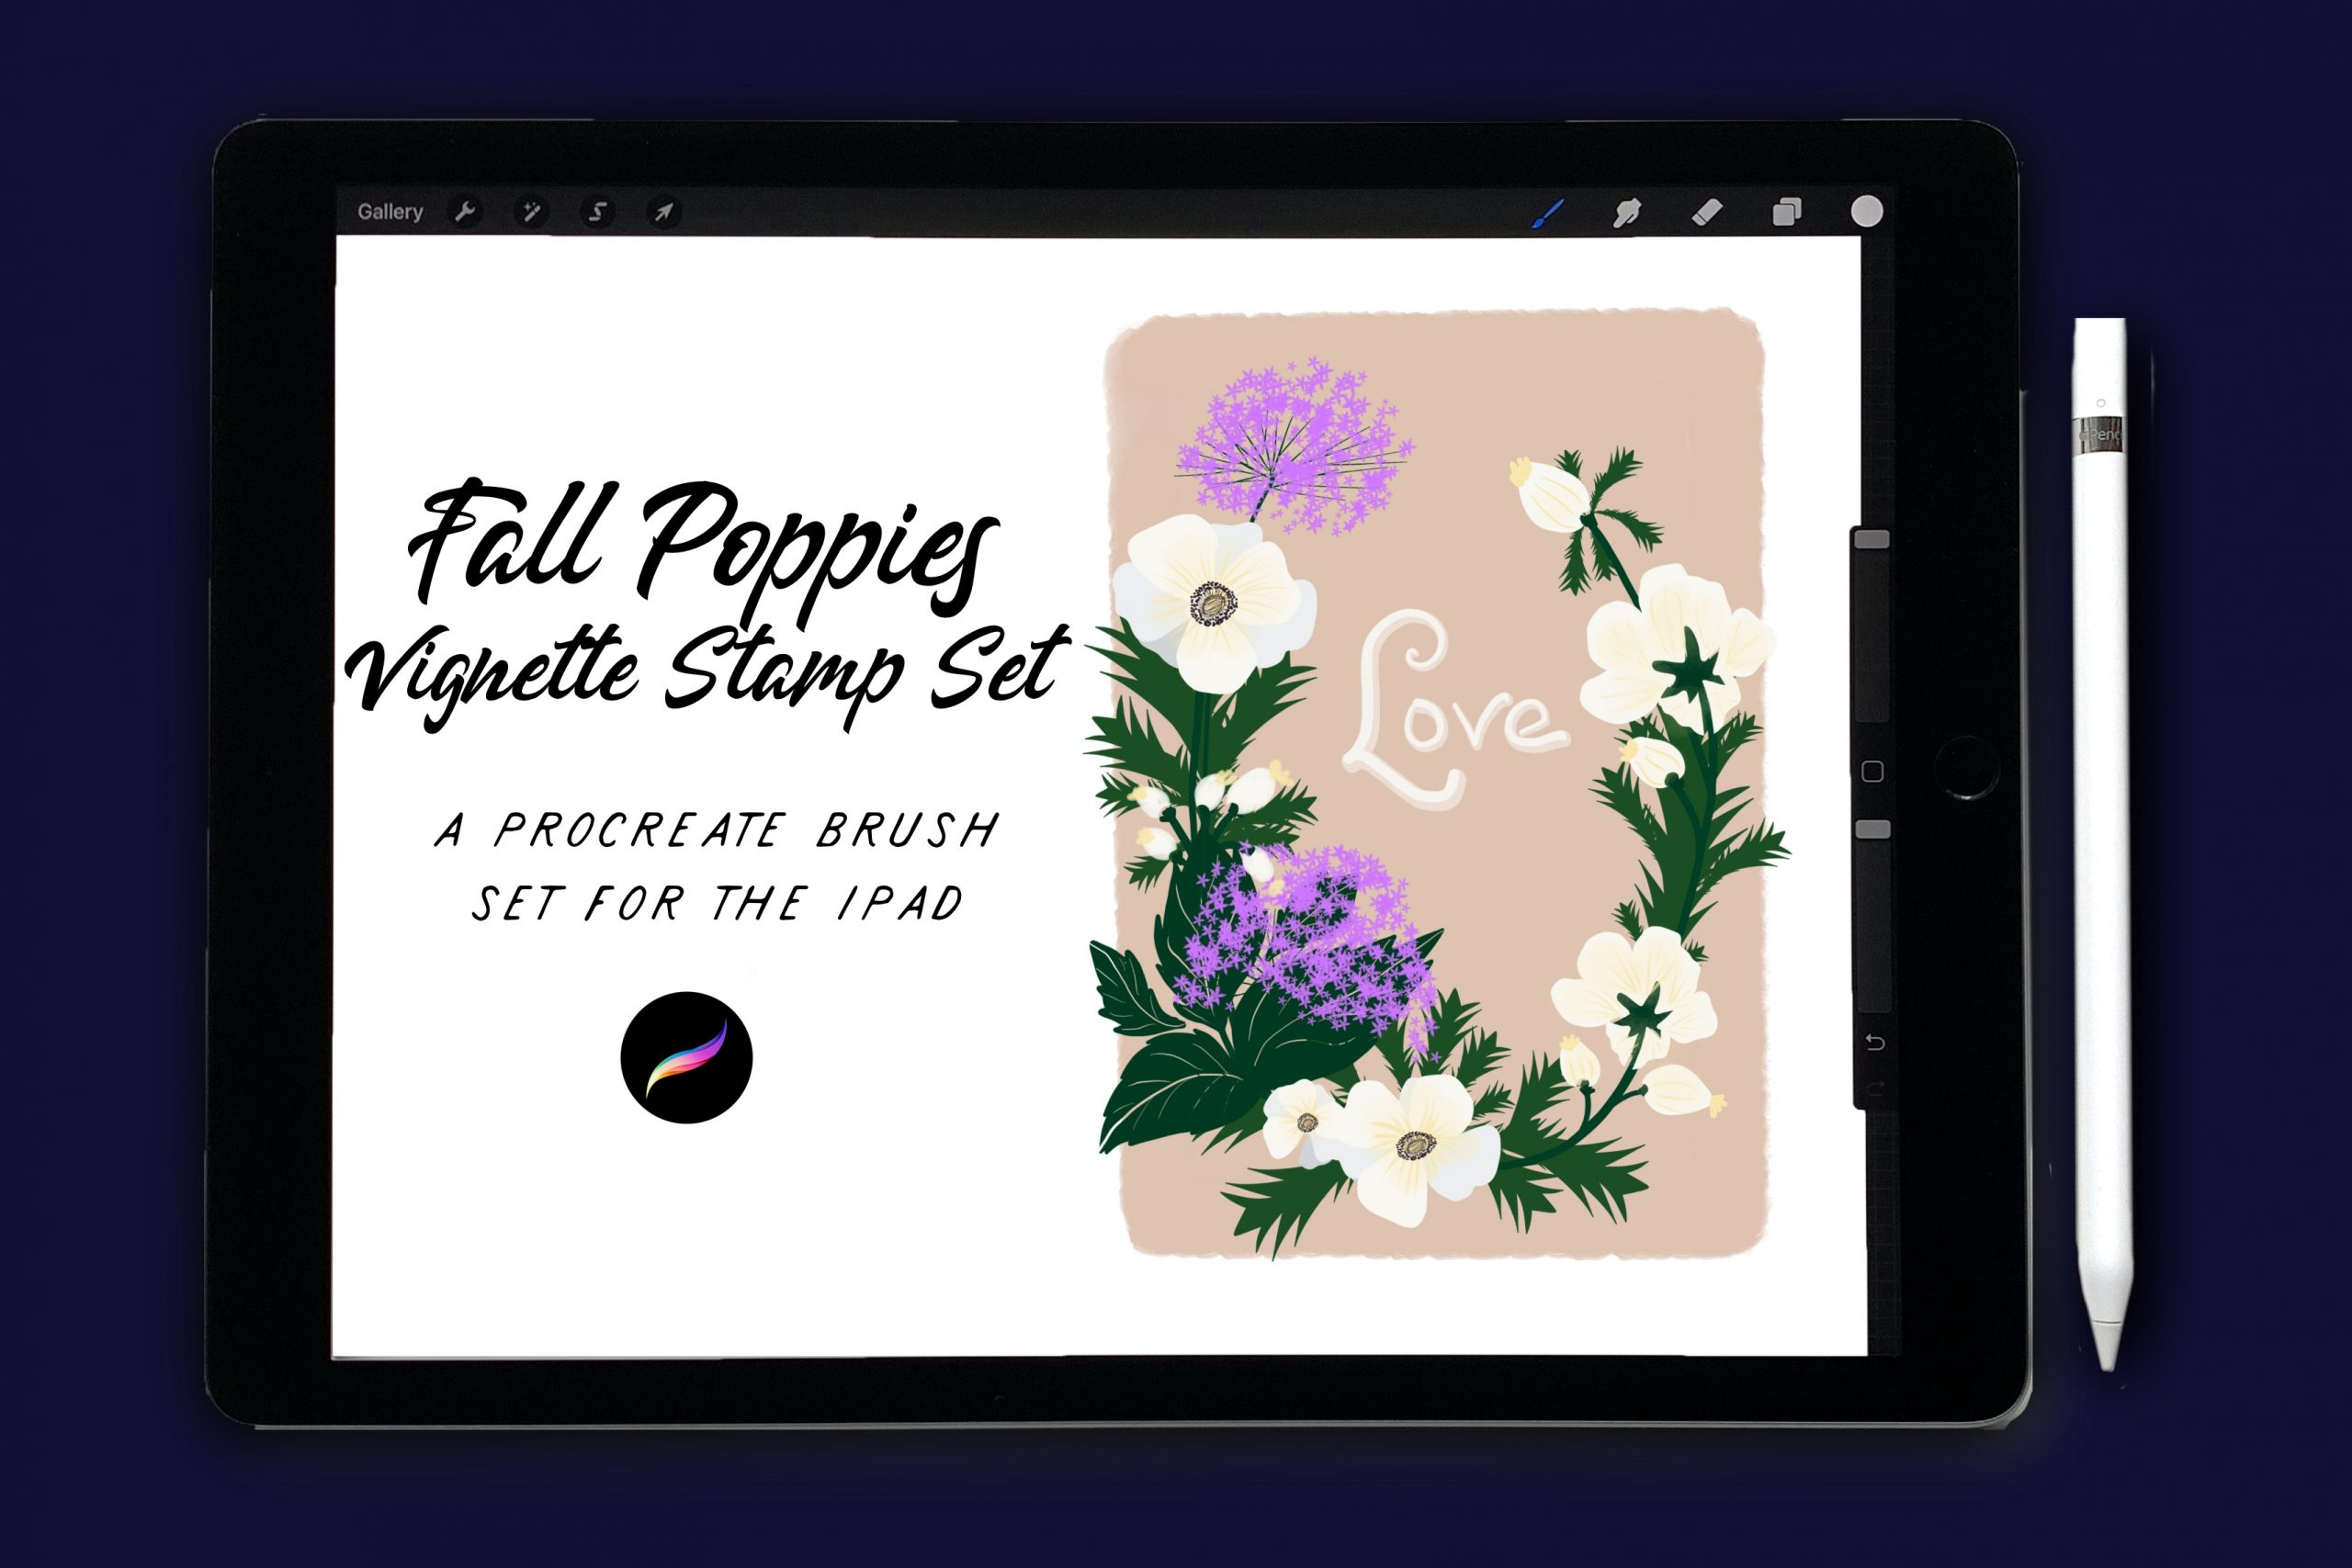 Fall Poppies Vignette Stamps